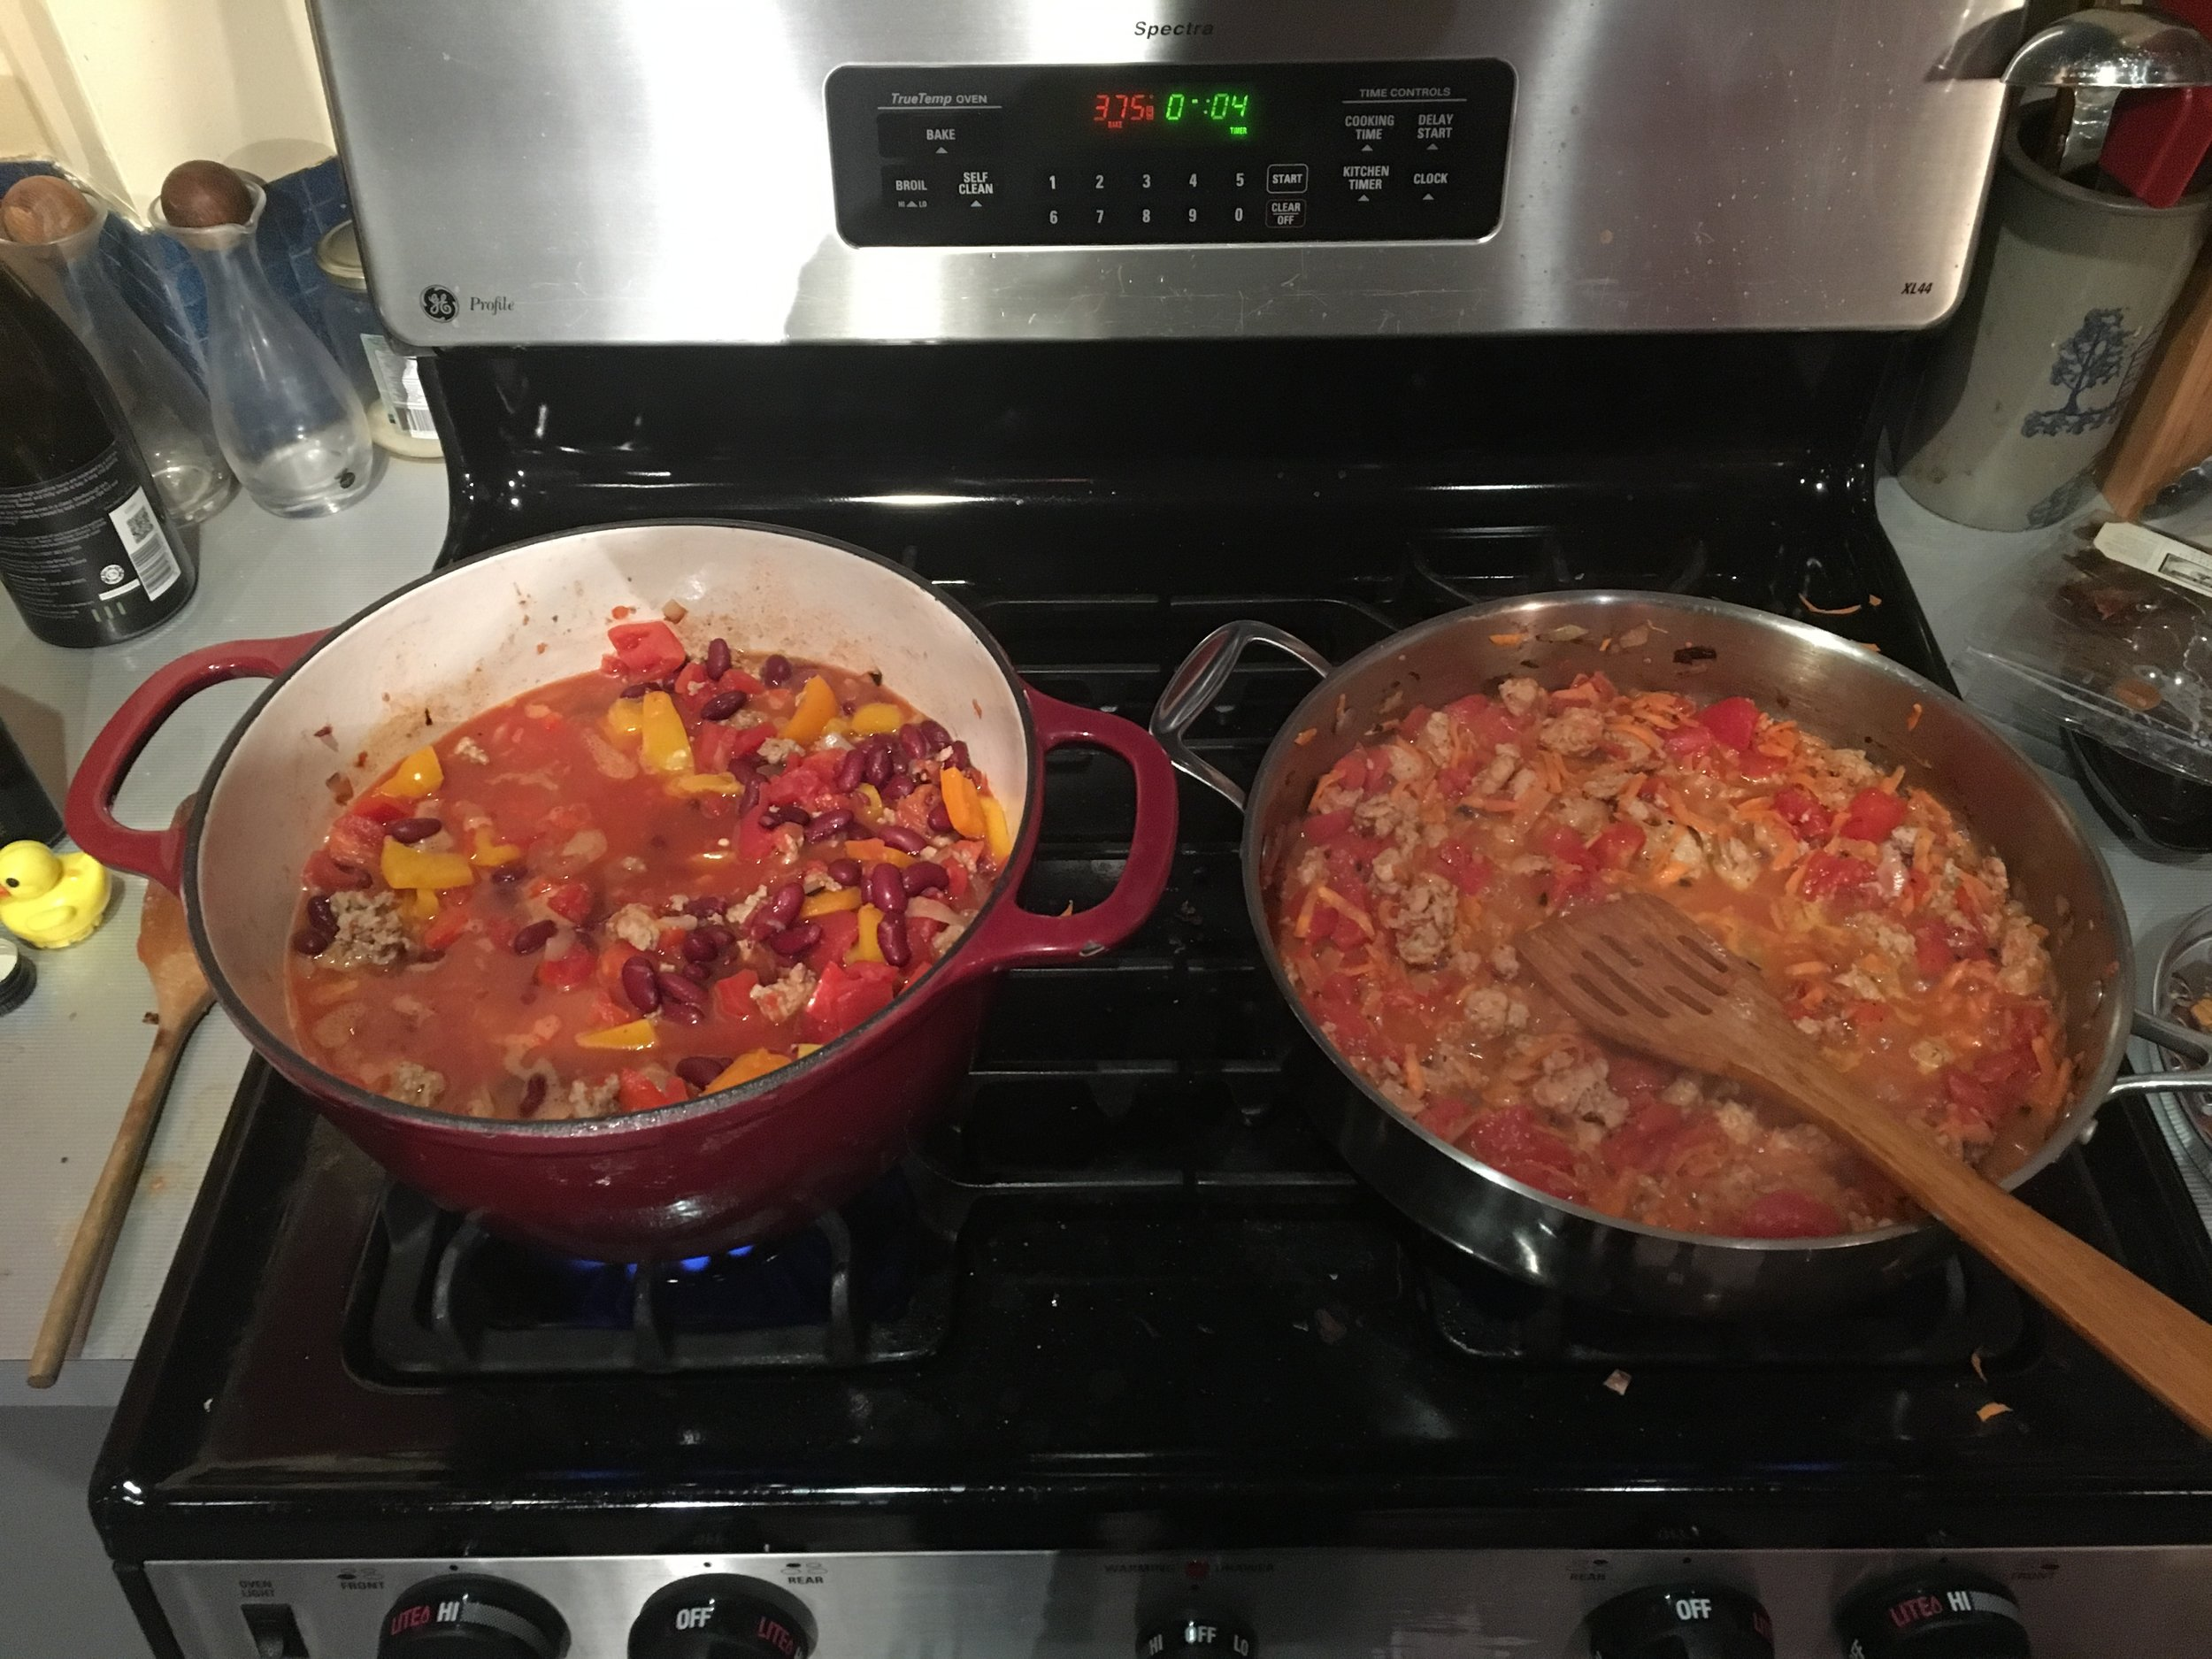 The lazy man's way of doing a diet - cook two GIANT meals to feed you for the entire week.